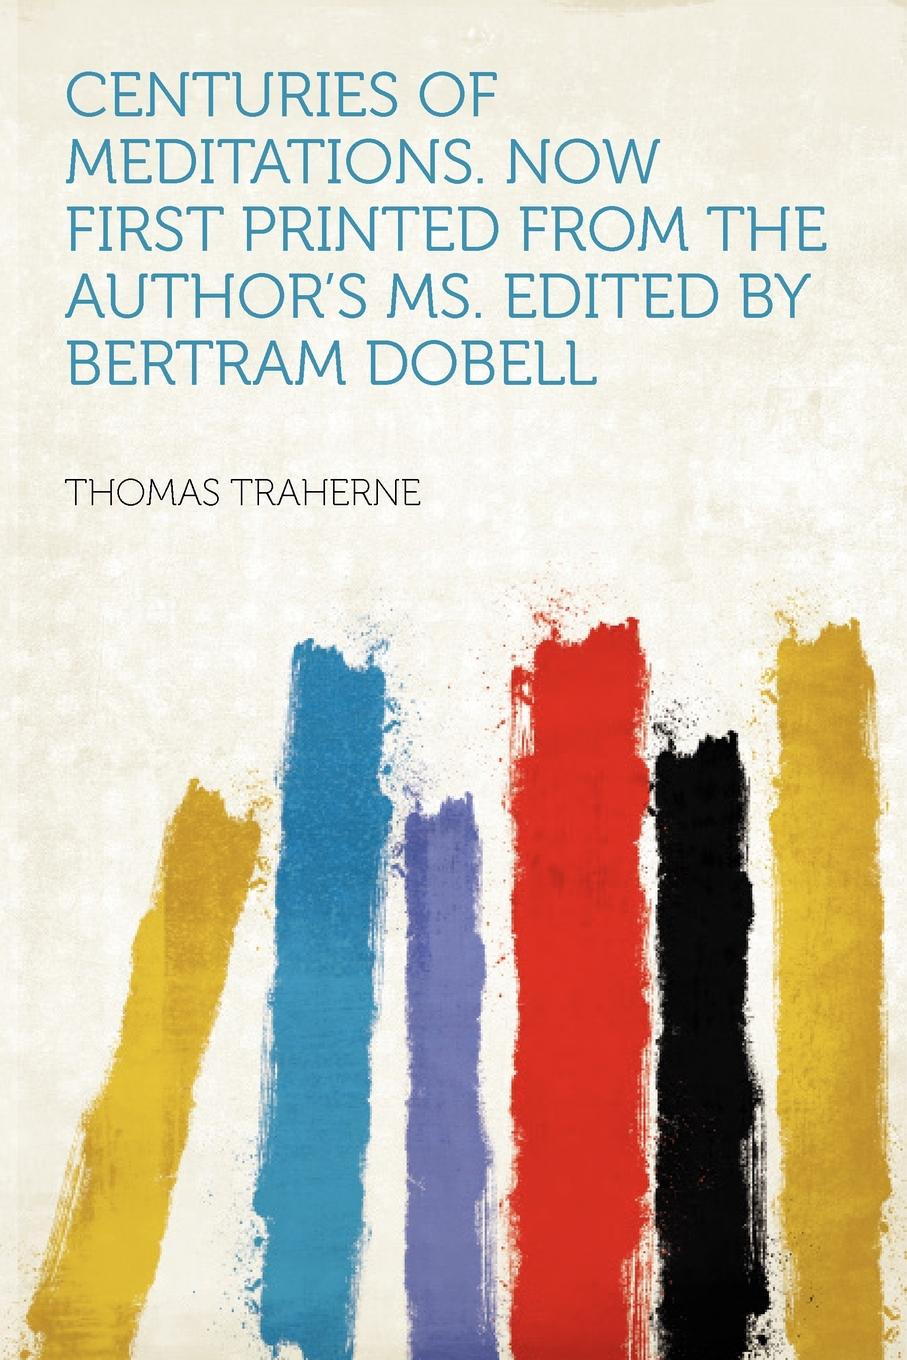 Thomas Traherne Centuries of Meditations. Now First Printed From the Authors MS. Edited by Bertram Dobell